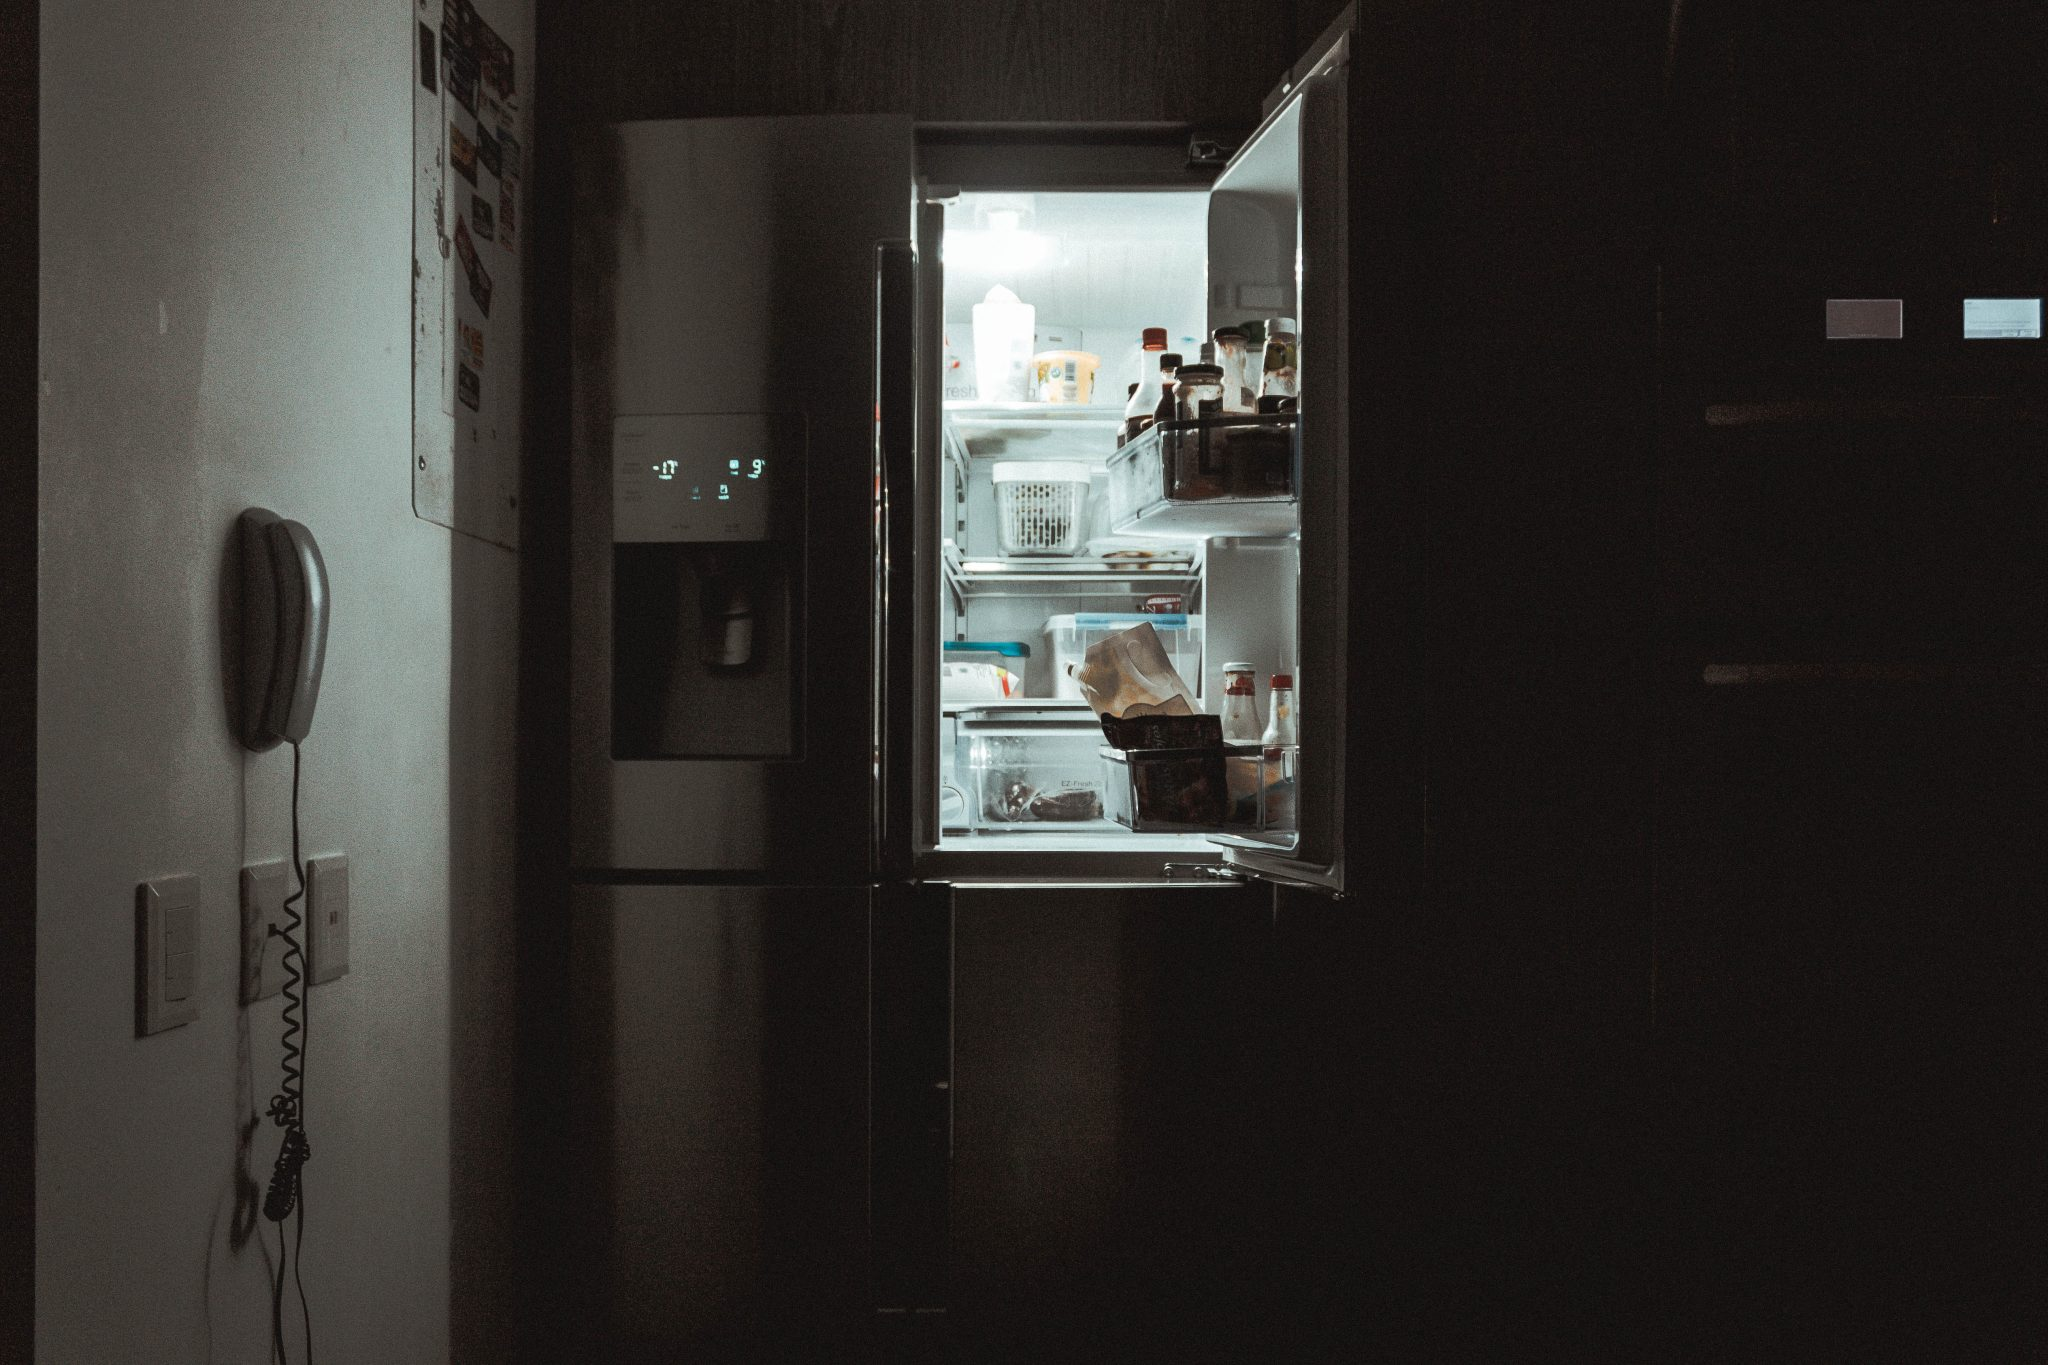 Night Time Fridge